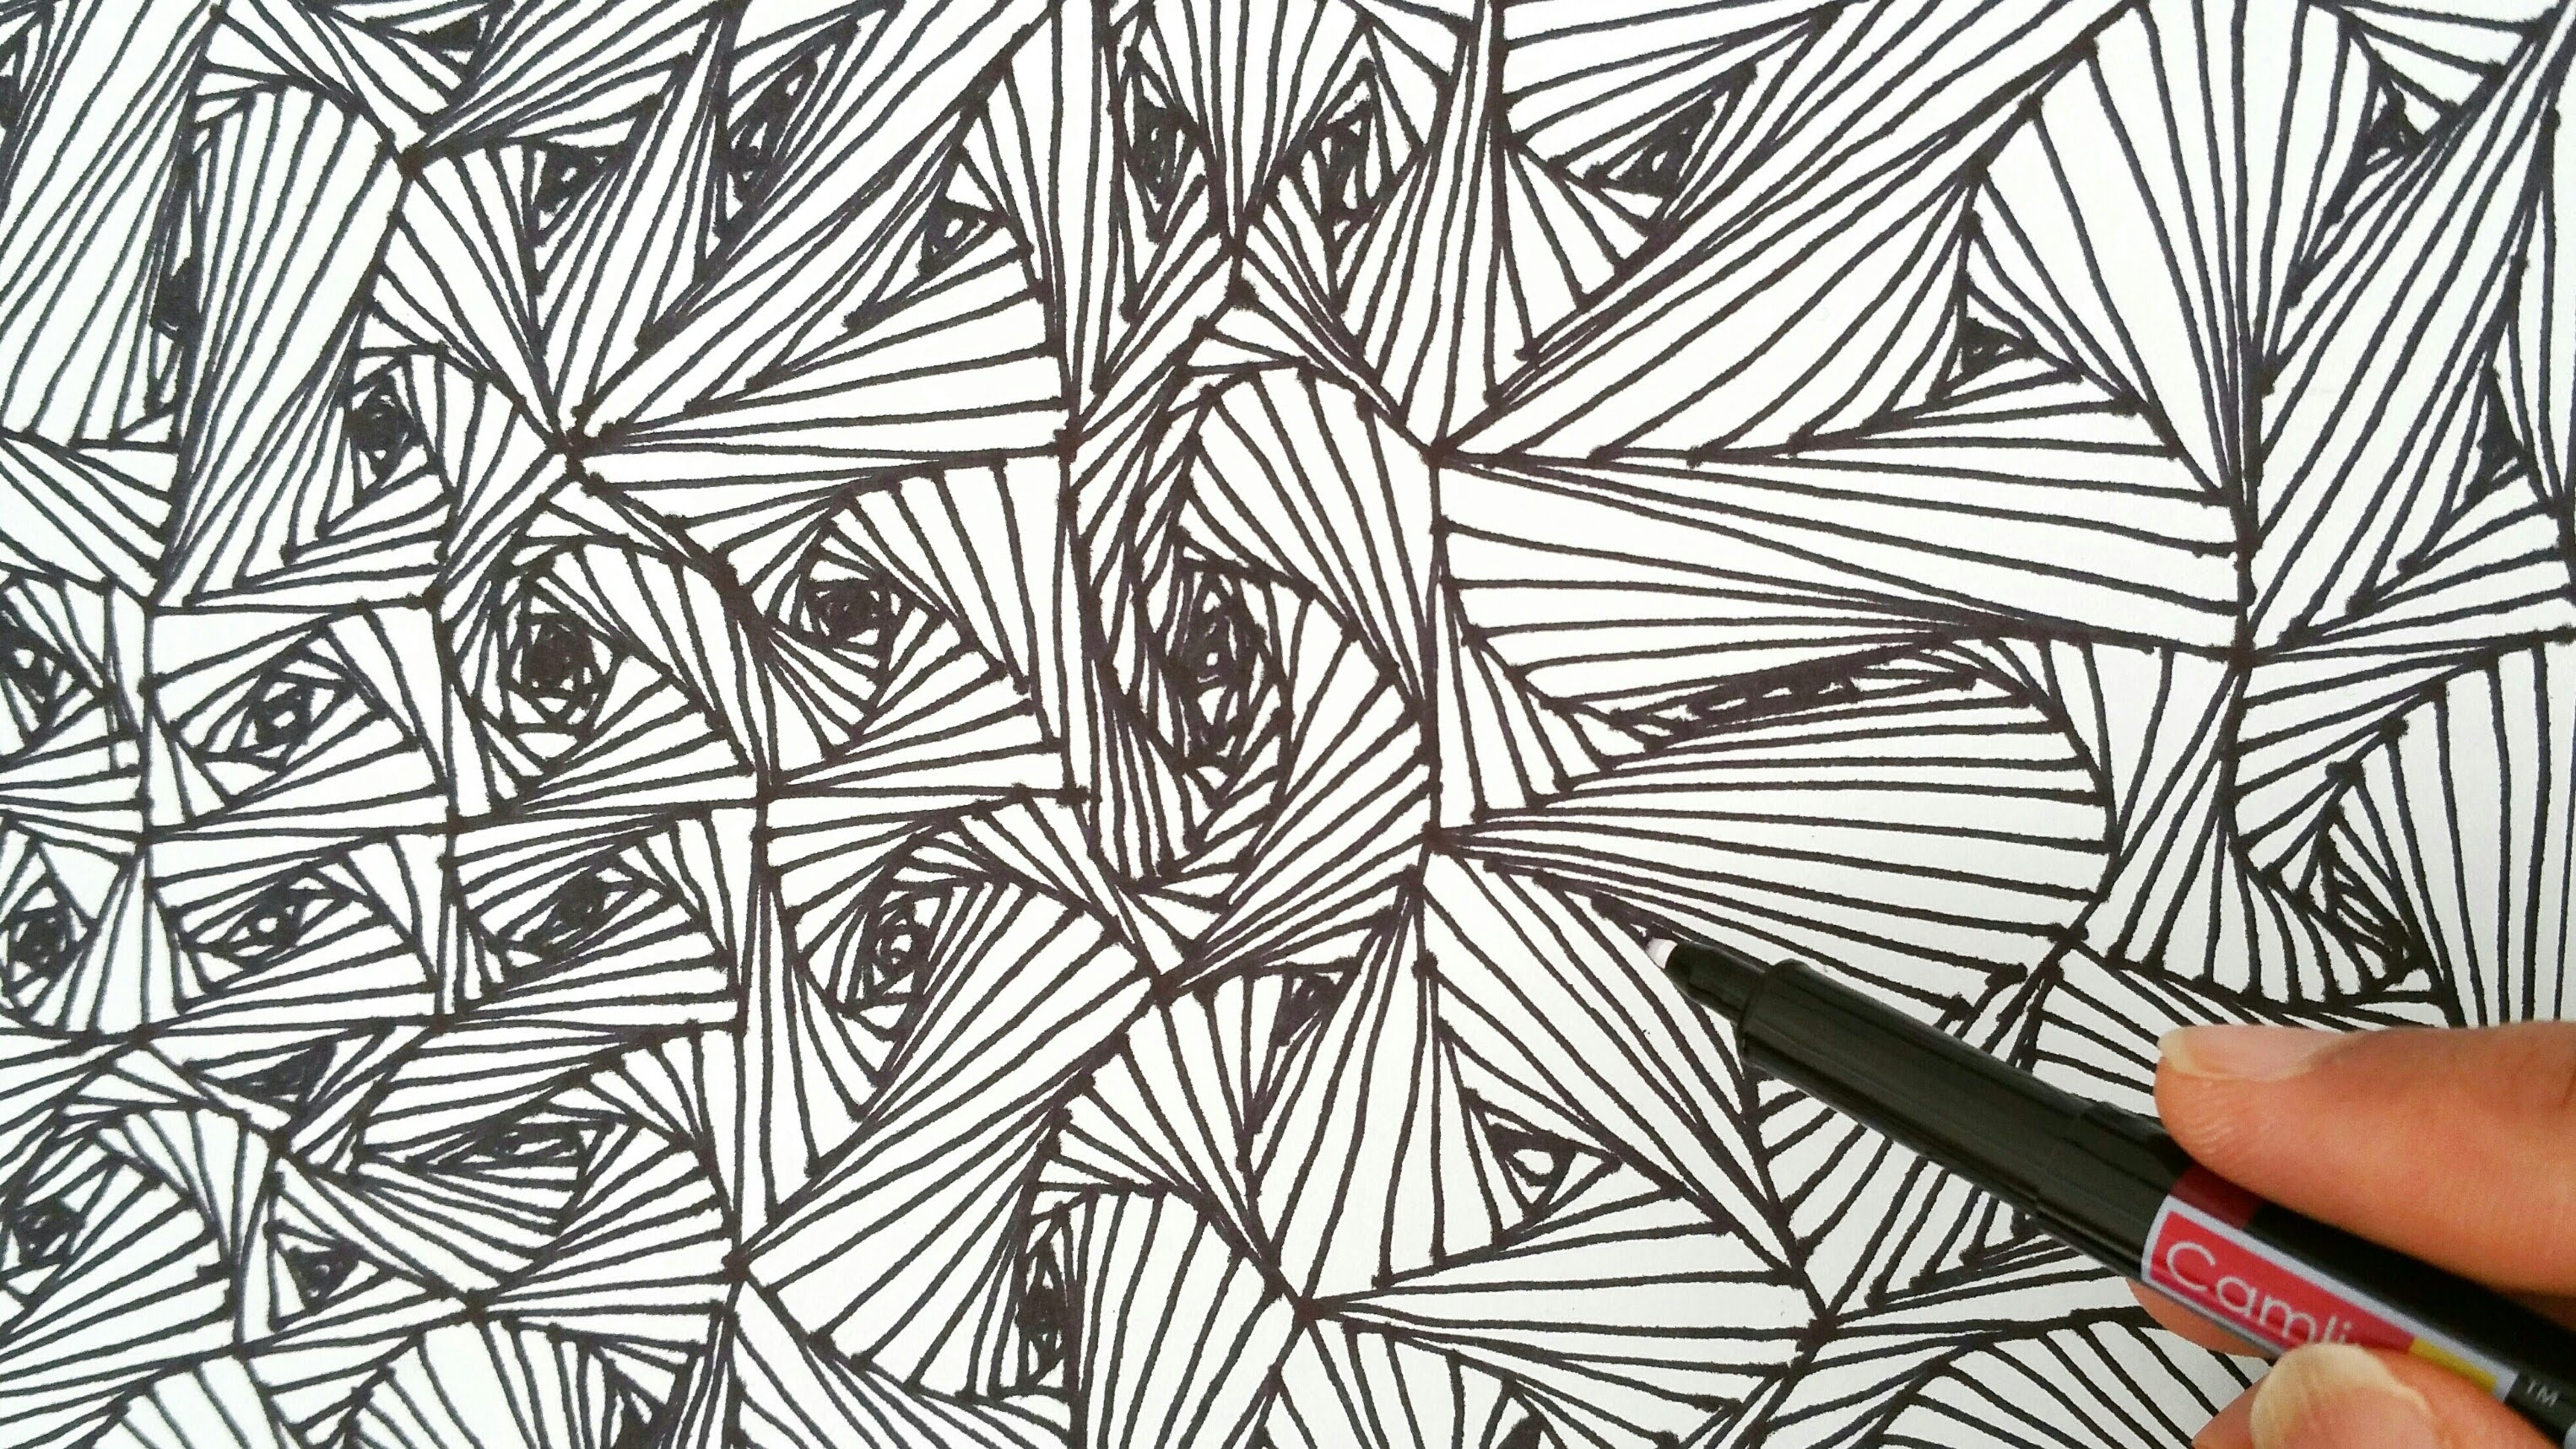 Drawn randome Patterns